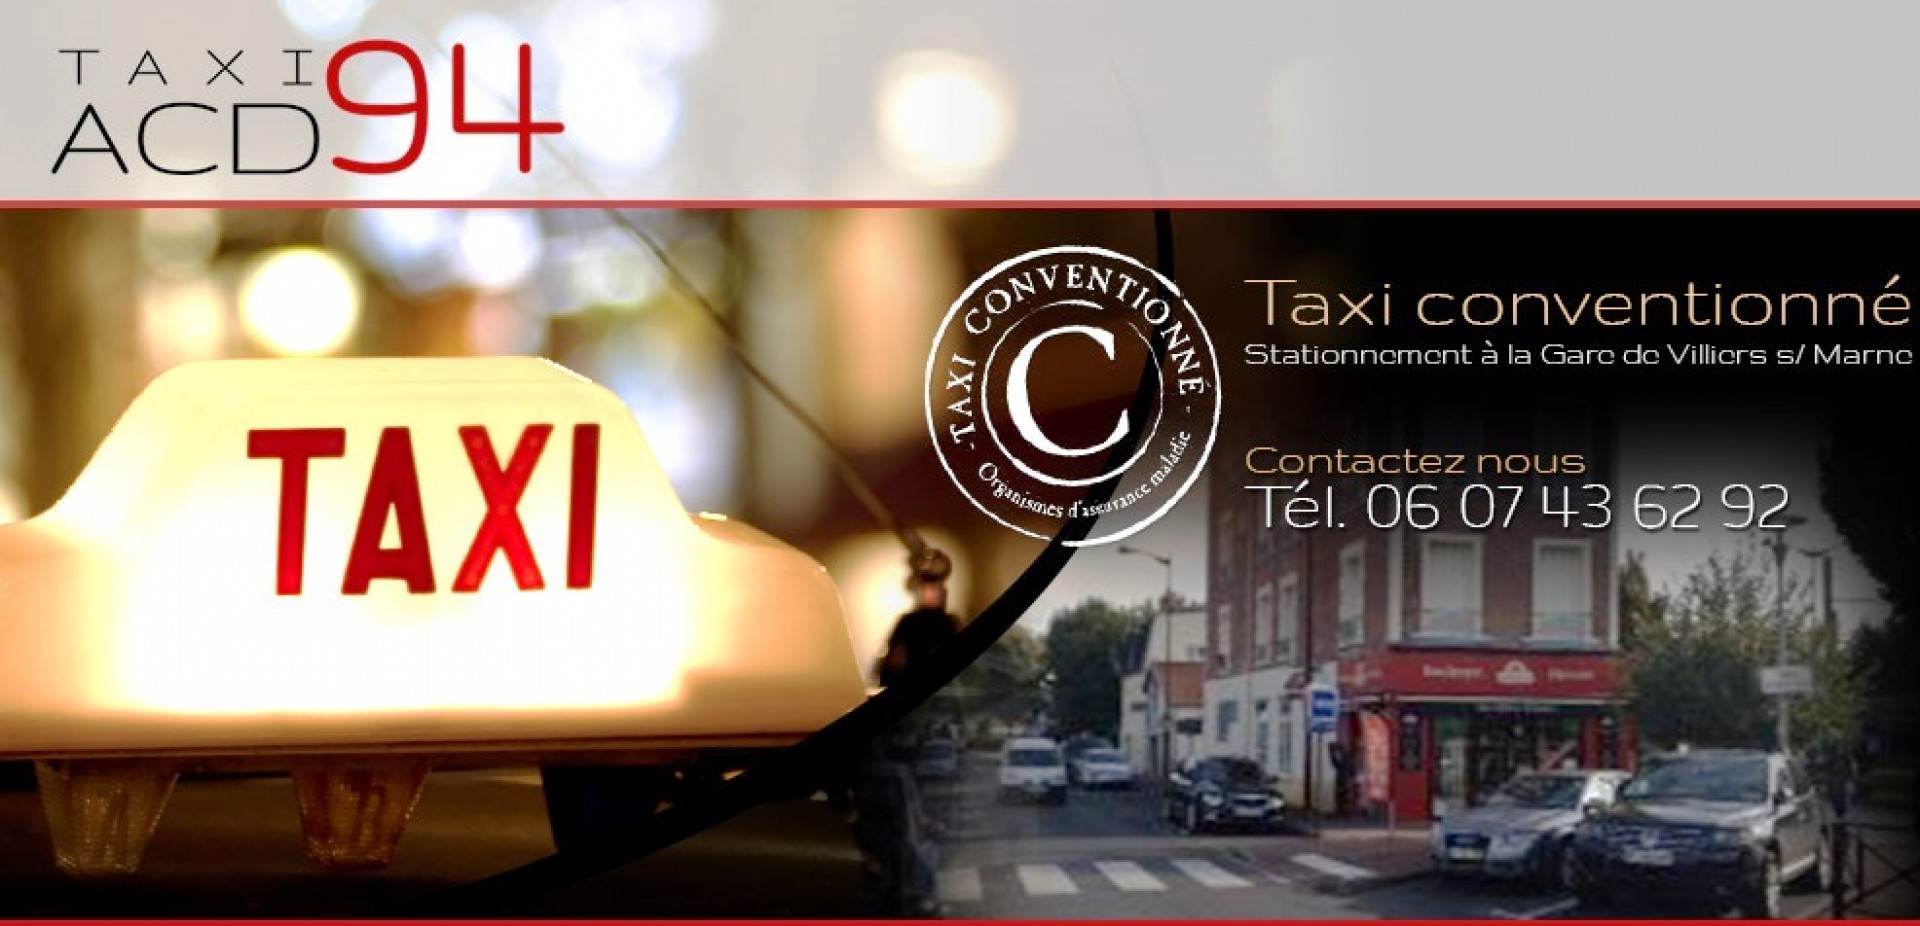 cropped-logo-taxi-acd94-1-1.png